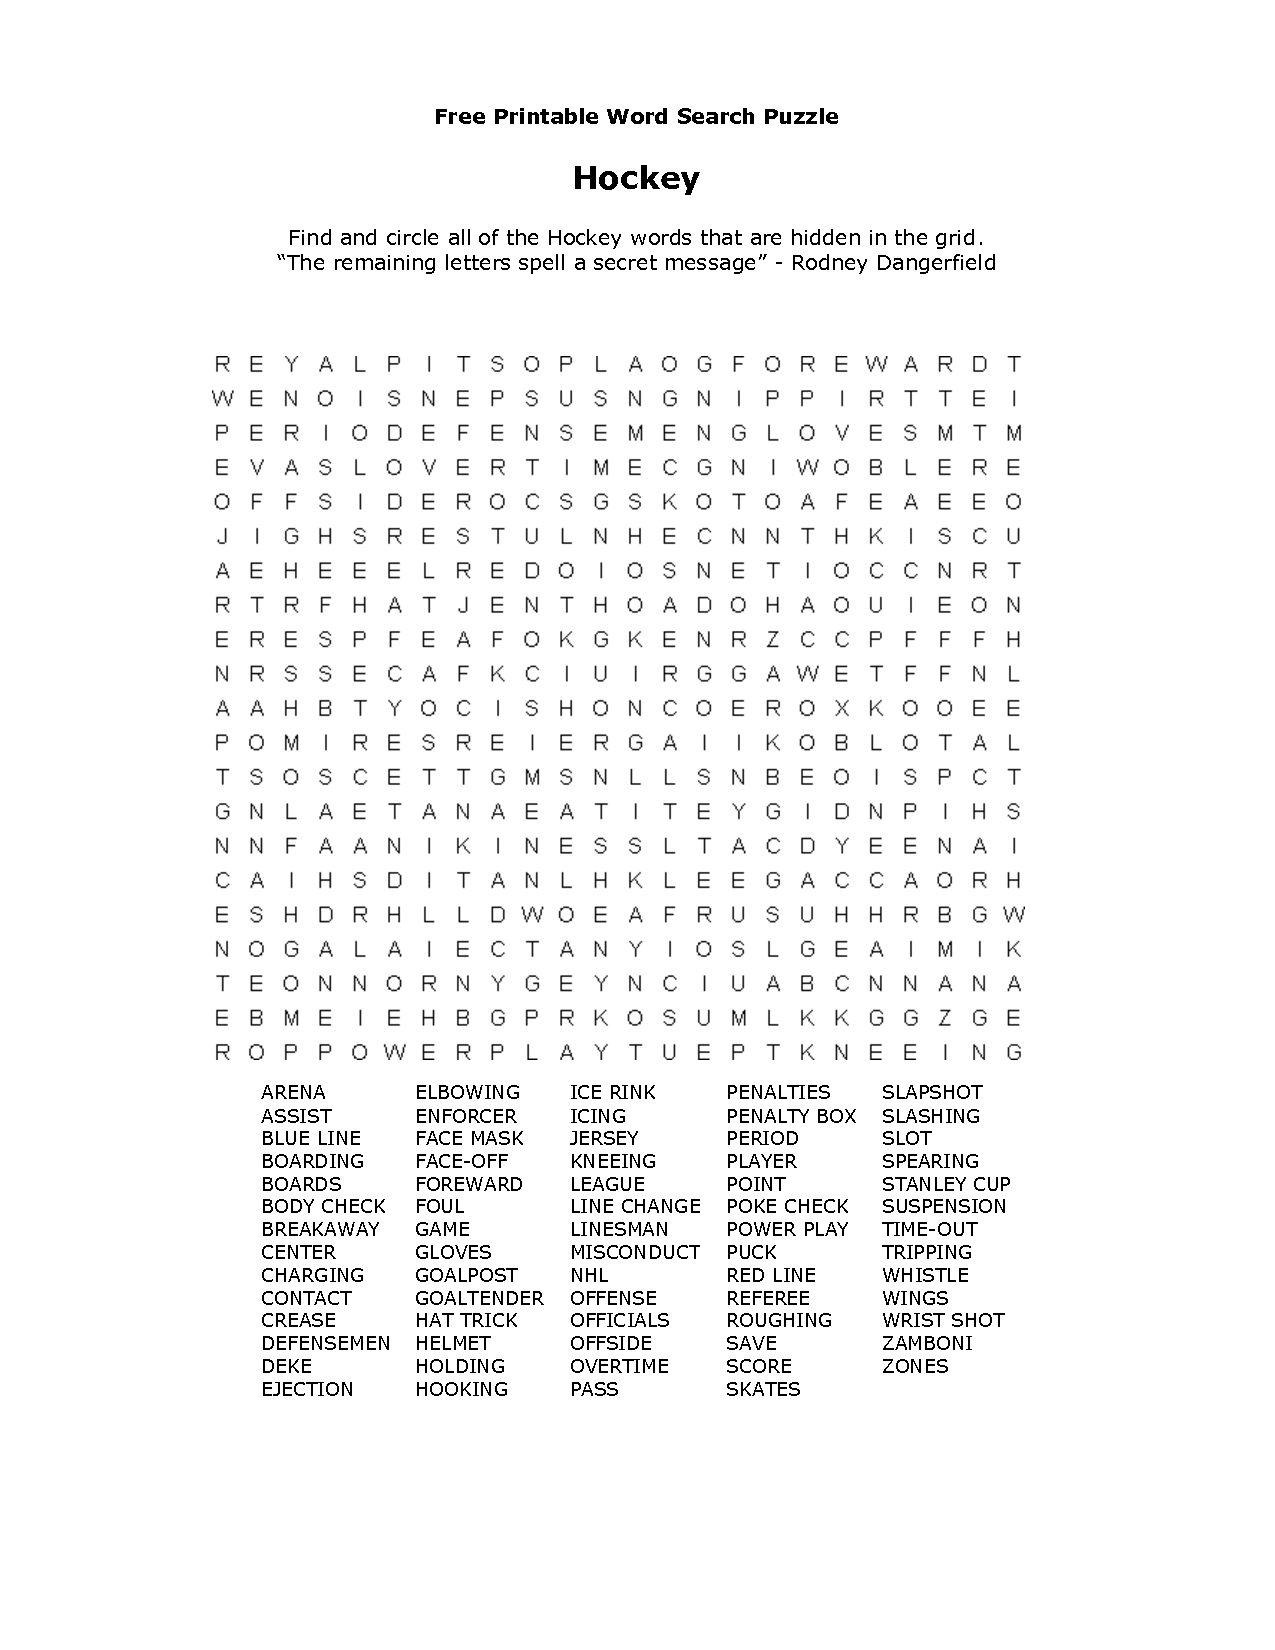 Free Printable Word Searches | طلال | Word Search Puzzles, Free - Free Printable Word Search Puzzles